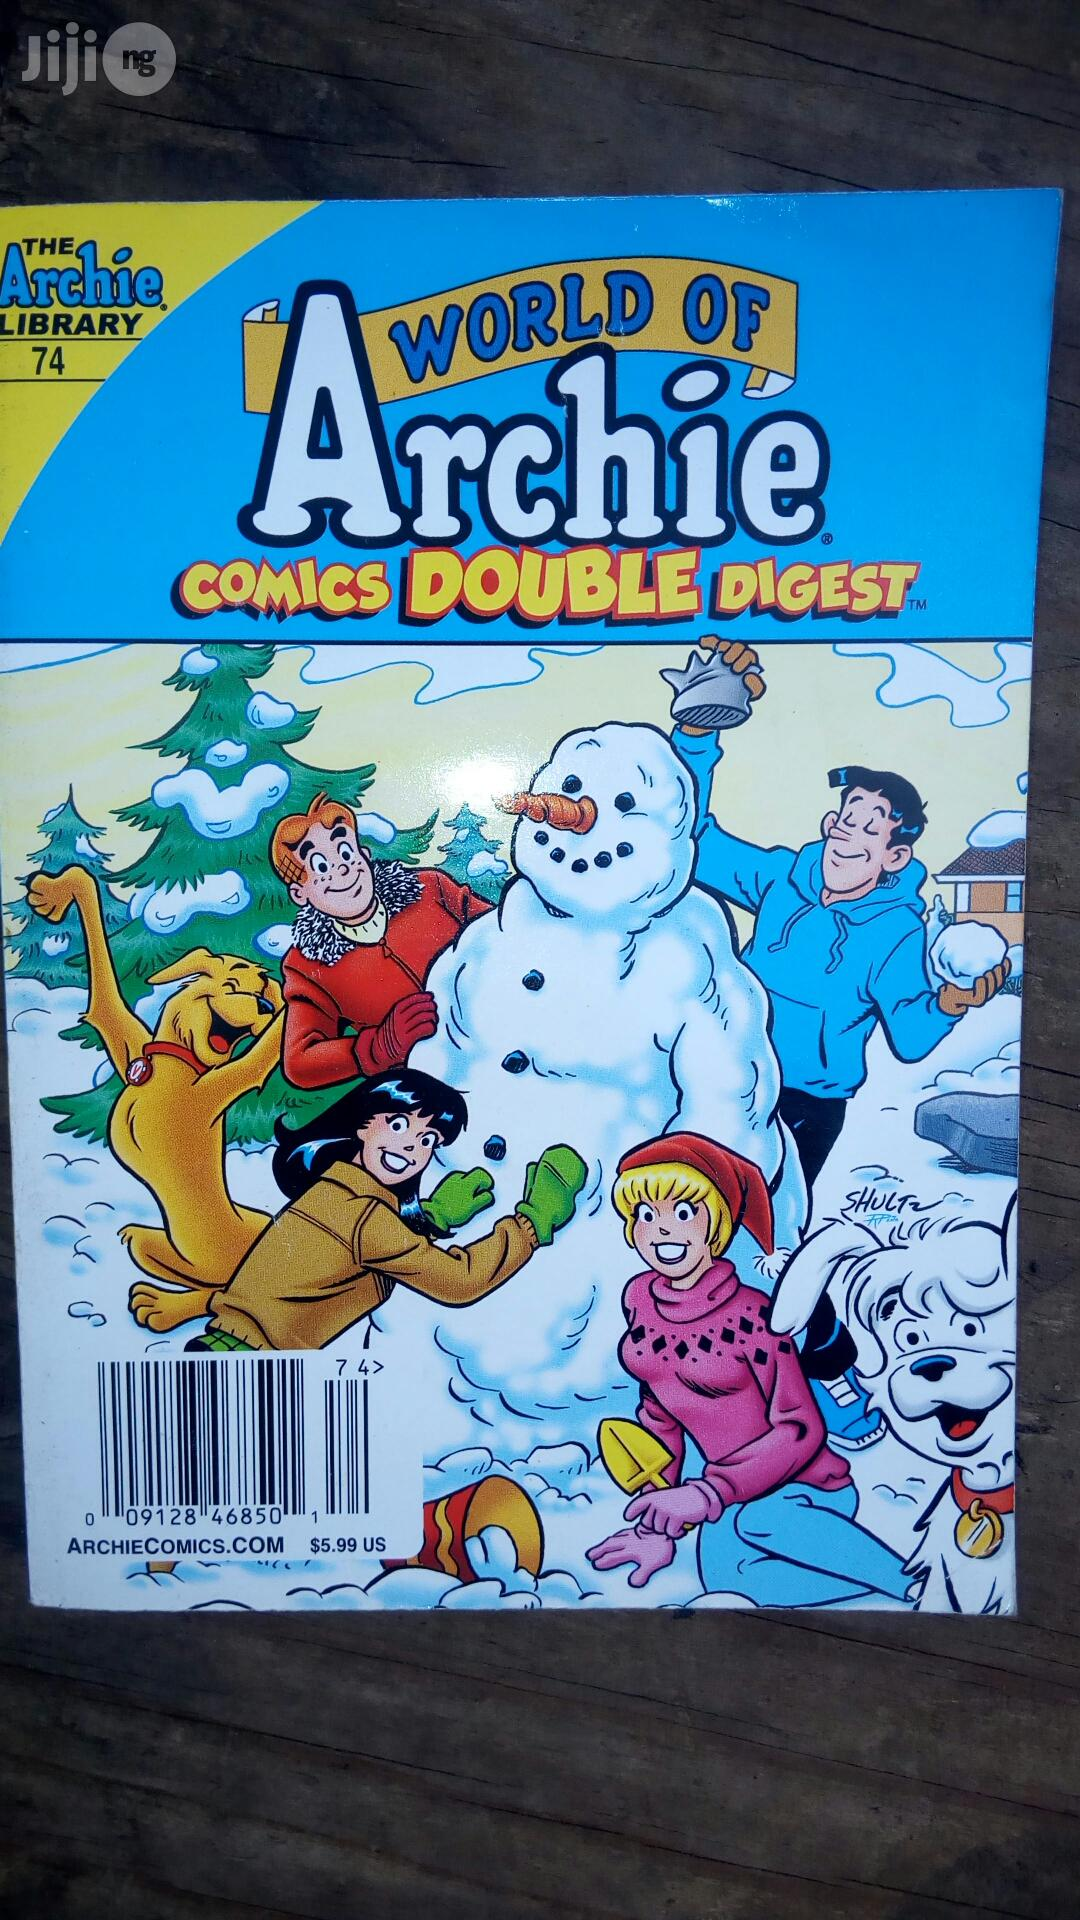 Archie Comic   Books & Games for sale in Yaba, Lagos State, Nigeria